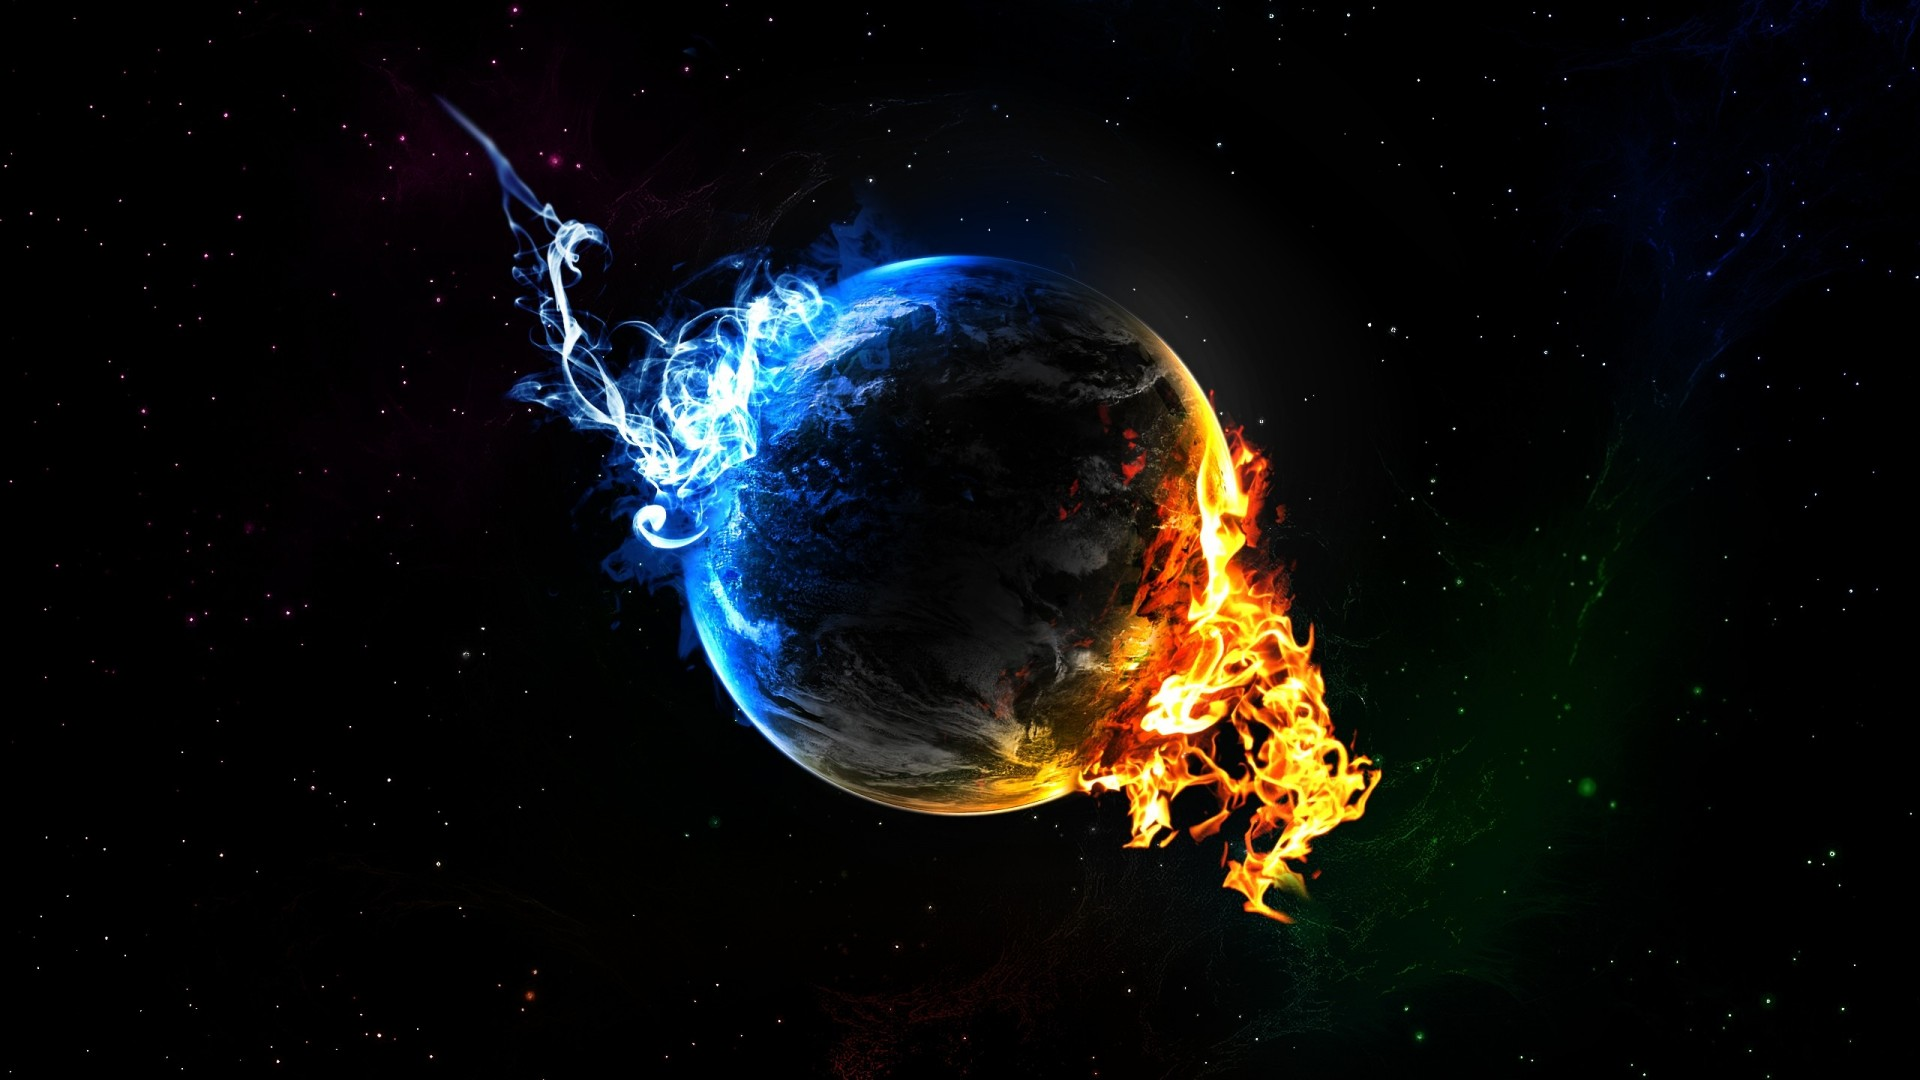 wallpaper download earth on fire wallpaper in hd resoutions for 1920x1080